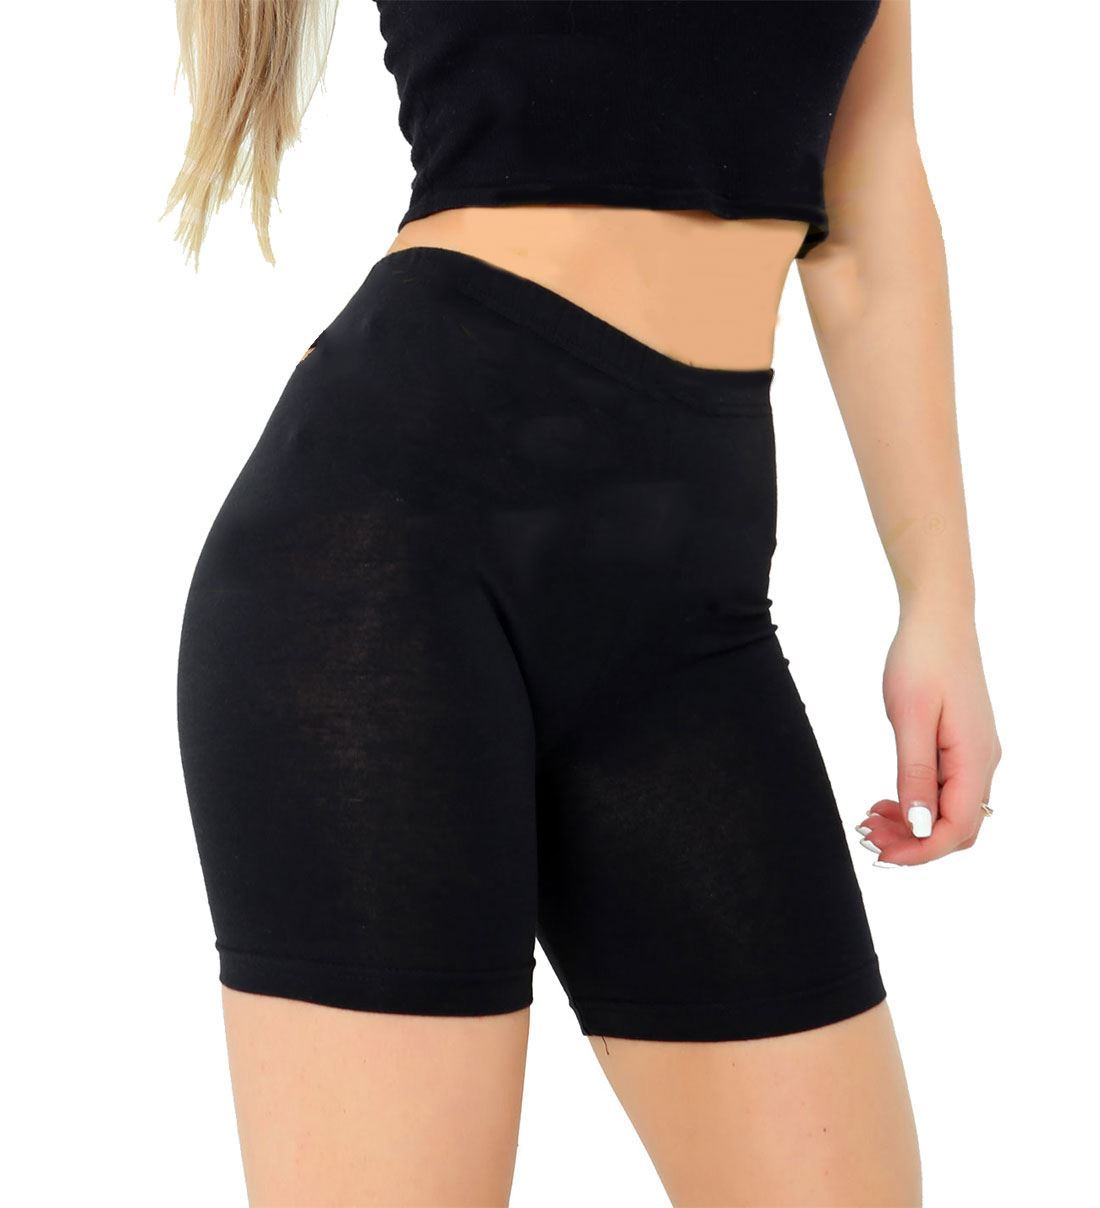 Womens-Fancy-1-2-Cotton-Legging-Novelty-Gym-Wear-Party-Dress-Shorts